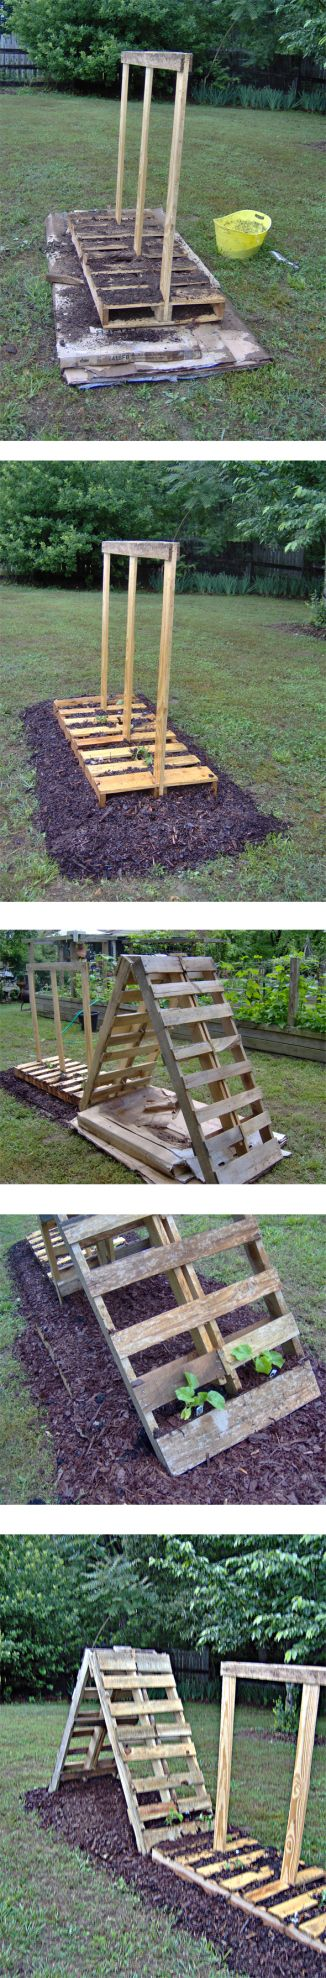 Pallet Garden Project - trellis' for growing